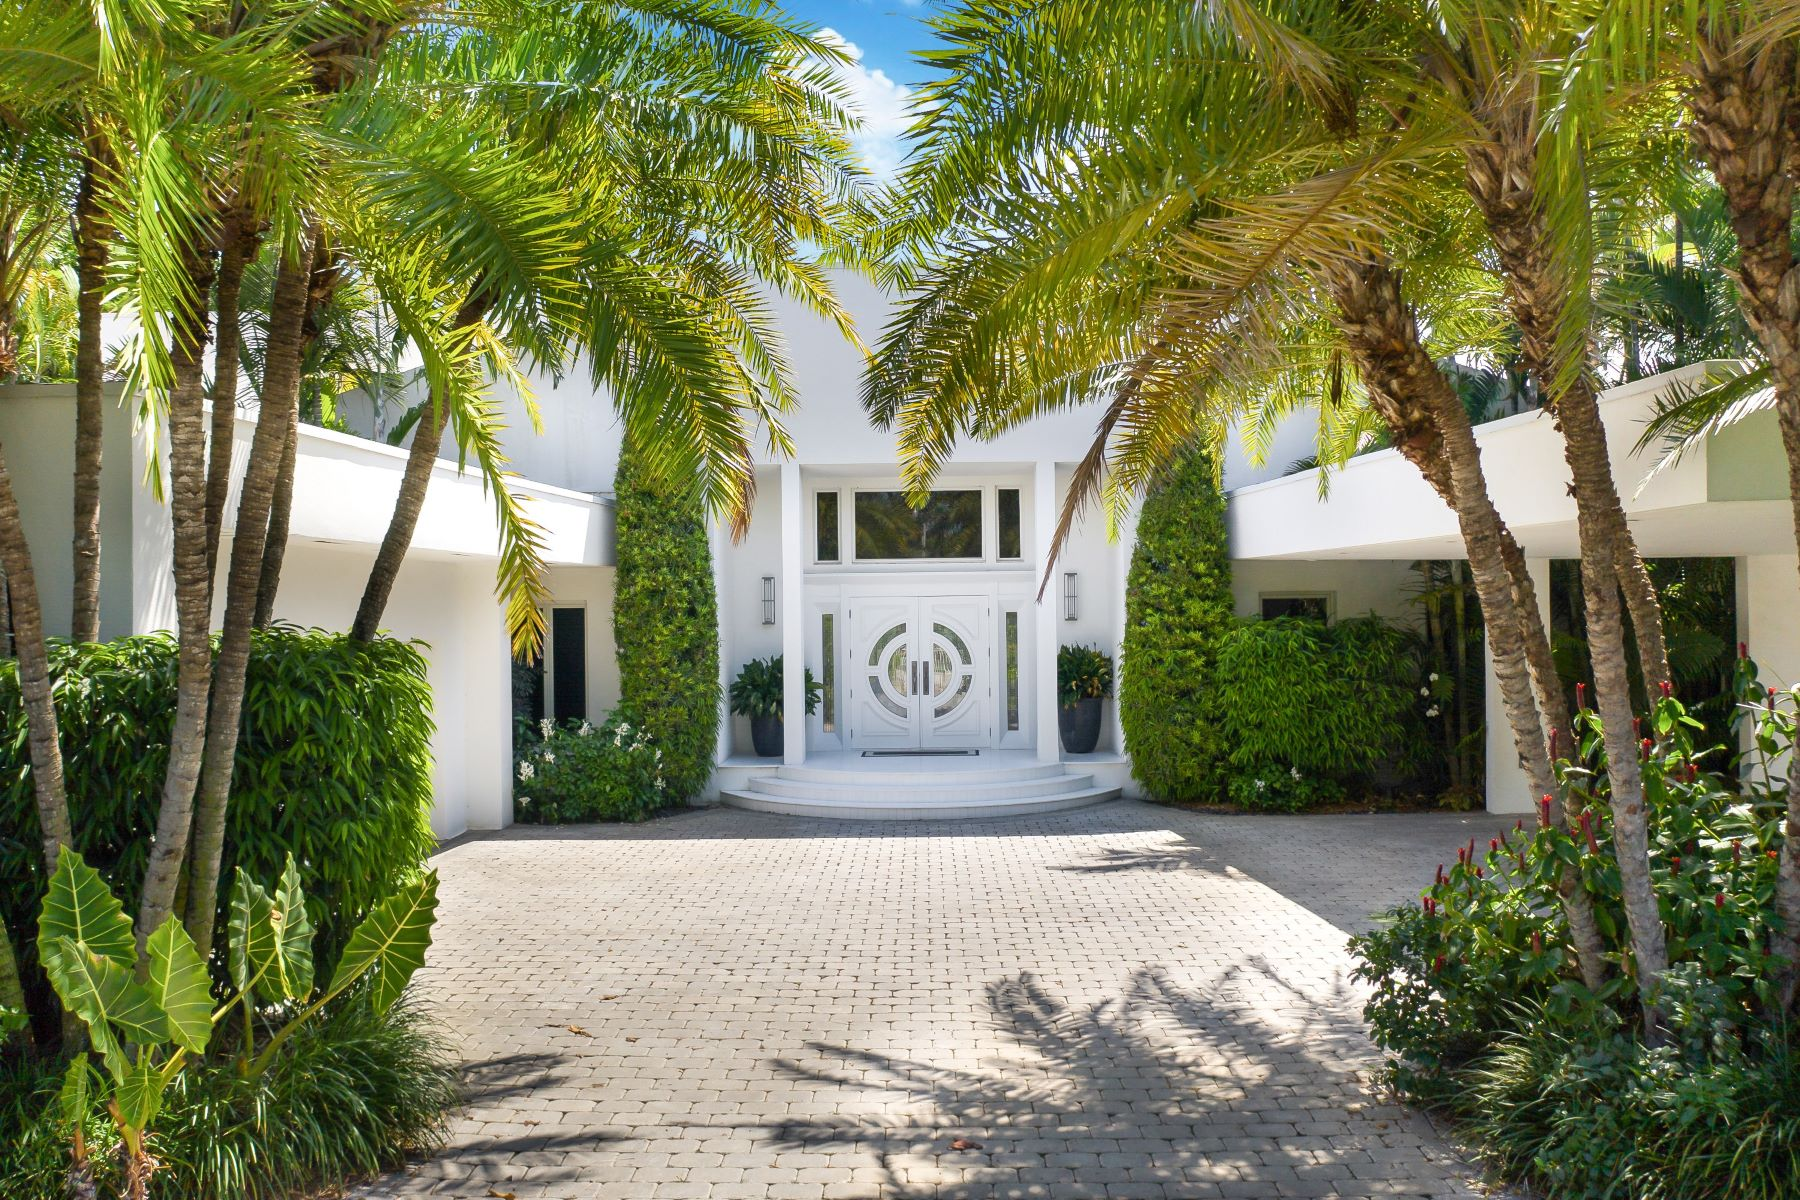 Single Family Homes for Active at 730 Harbor Dr Key Biscayne, Florida 33149 United States